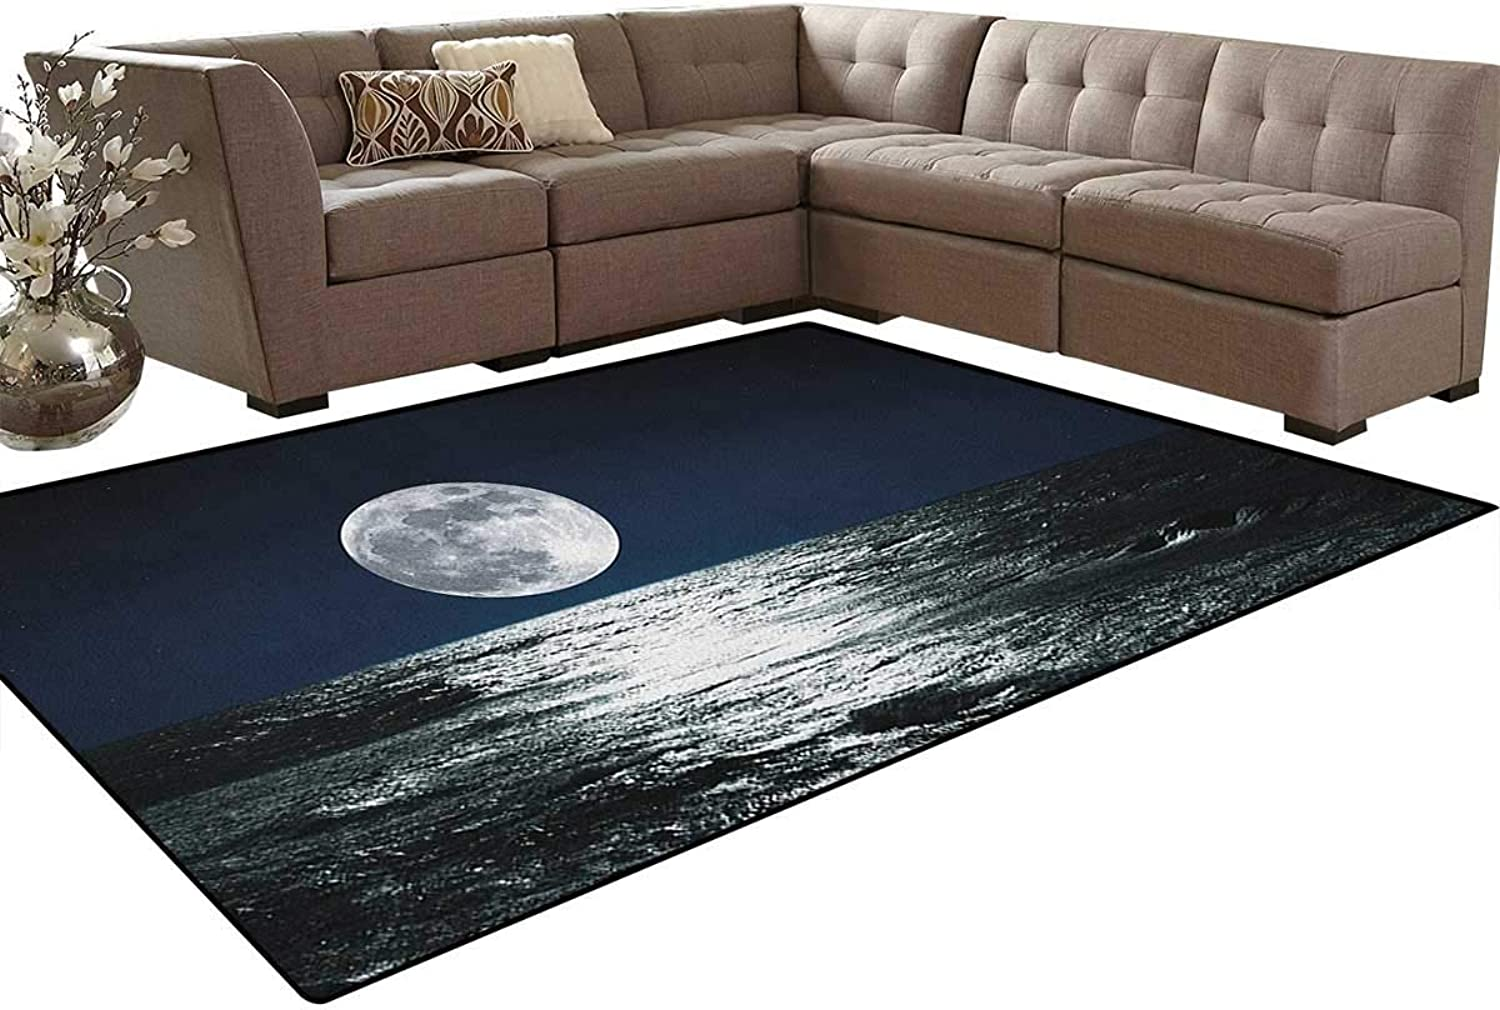 Big Moon and Its Reflection on The Sea Open Sky Ethereal Drawing Style Floor Mat Rug Indoor Front Door Kitchen and Living Room Bedroom Mats Rubber Non Slip